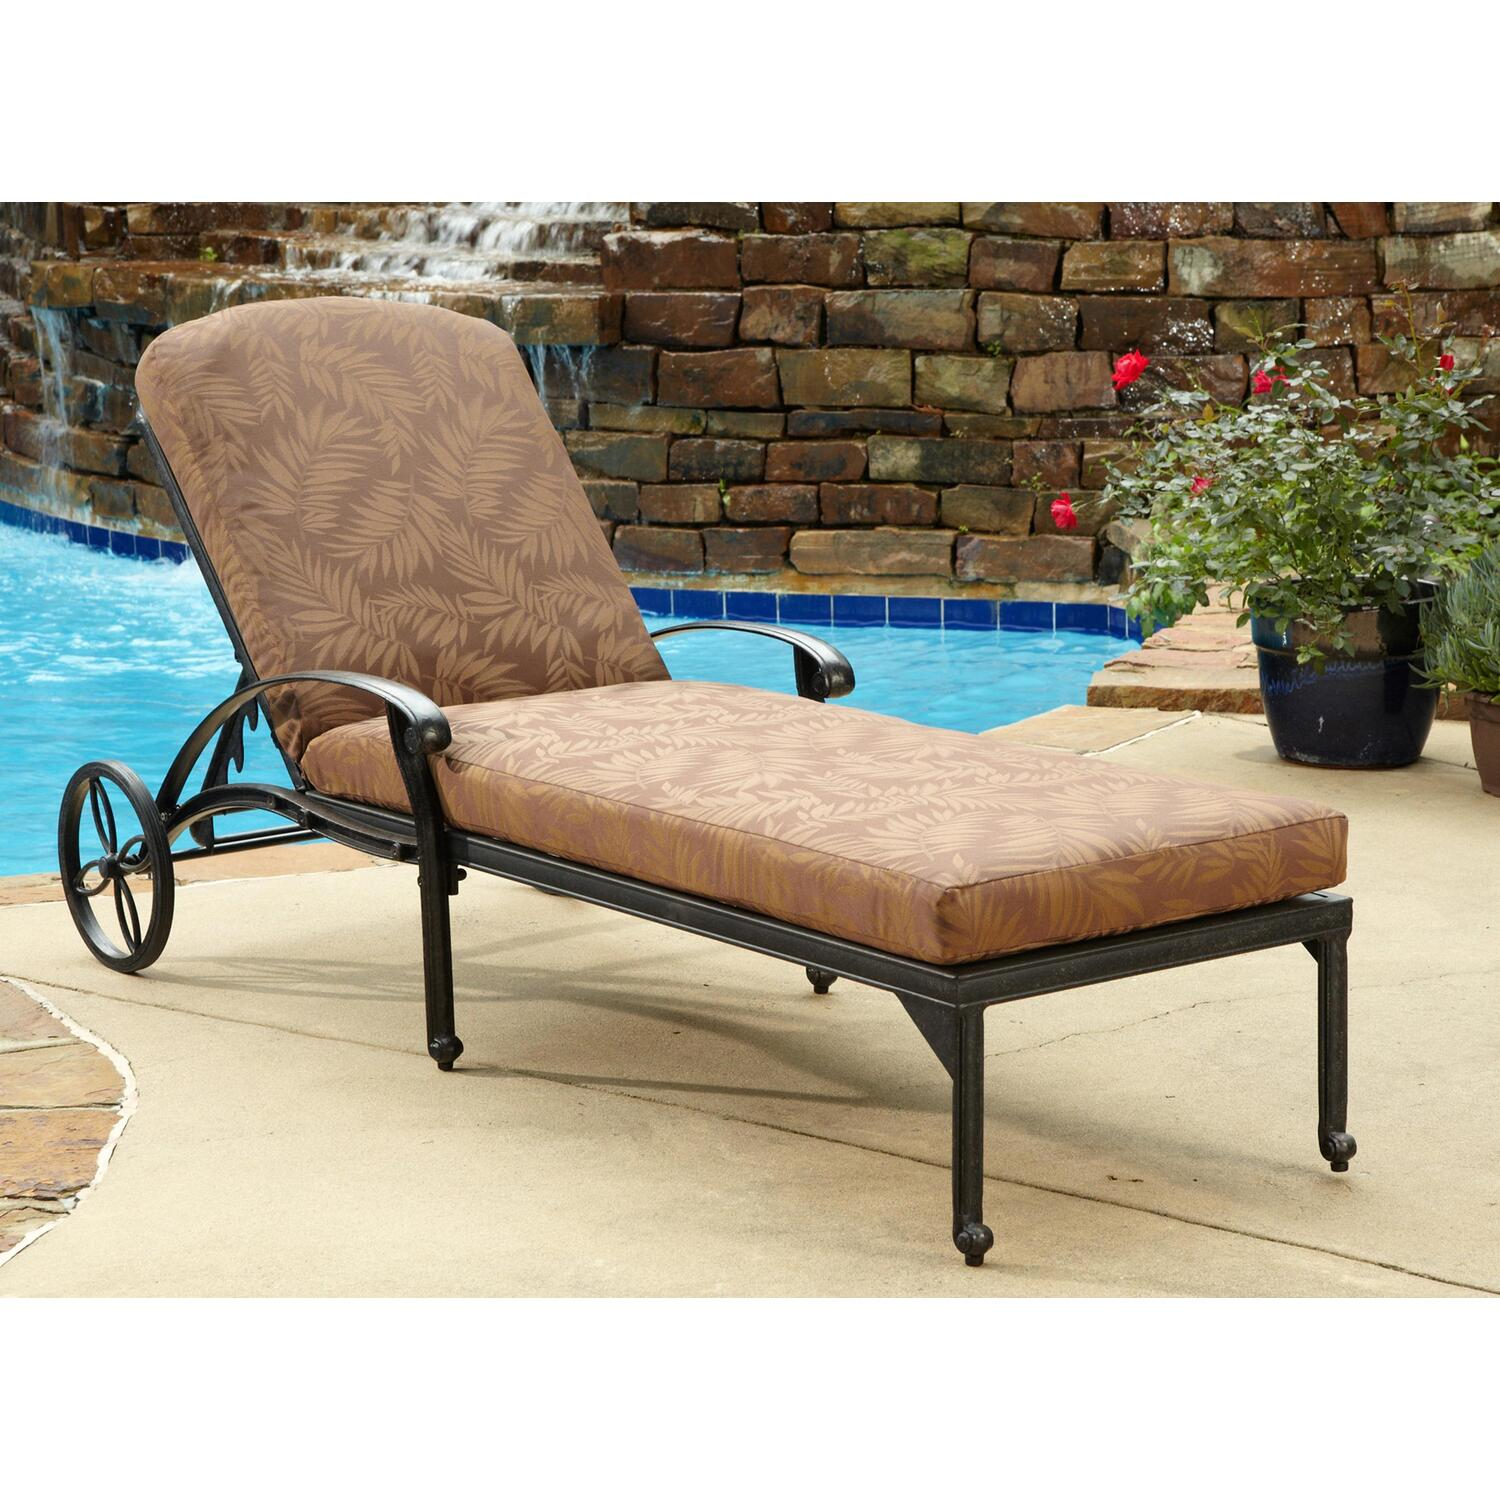 Home Styles Floral Blossom Chaise Lounge Chair w/ Cushion by OJ ...